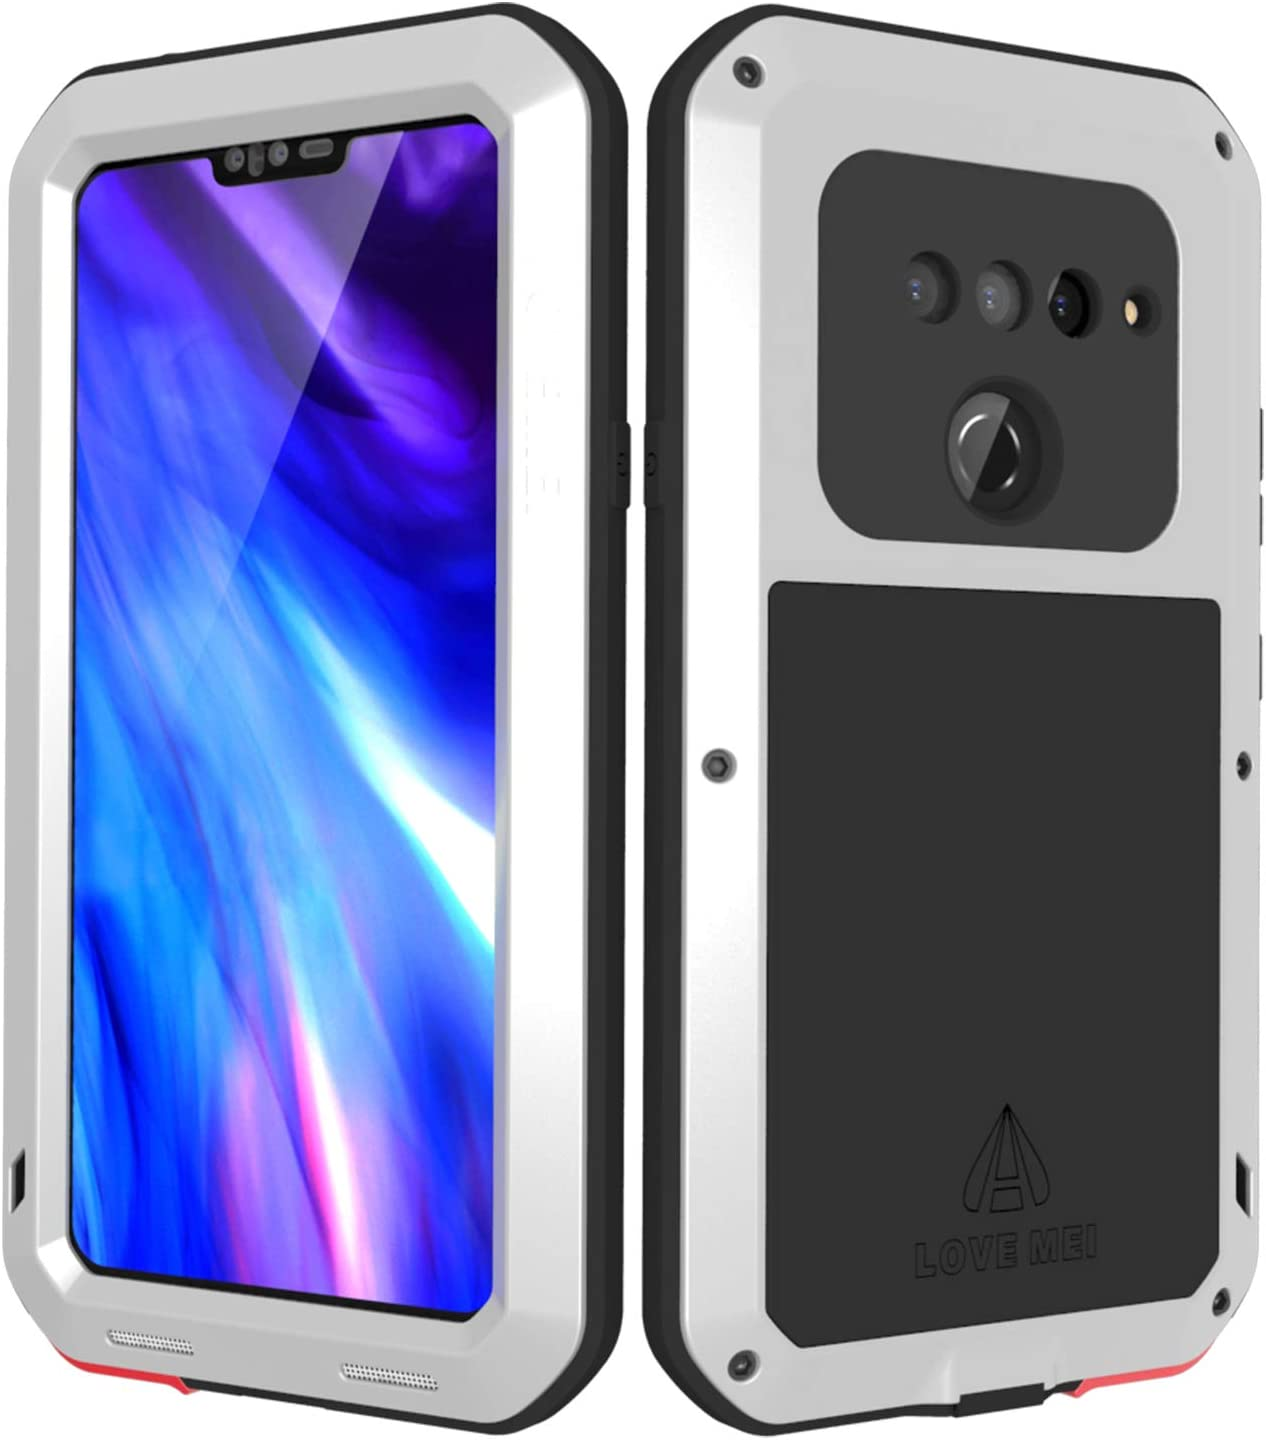 LOVE MEI LG V40 ThinQ Case with Built-in Glass Screen Protector, Wireless Charging Sturdy Cover Shockproof Dustproof Hybrid Metal and Silicone Rugged Heavy Duty Tank Outdoor Case for LG V40(Silver)